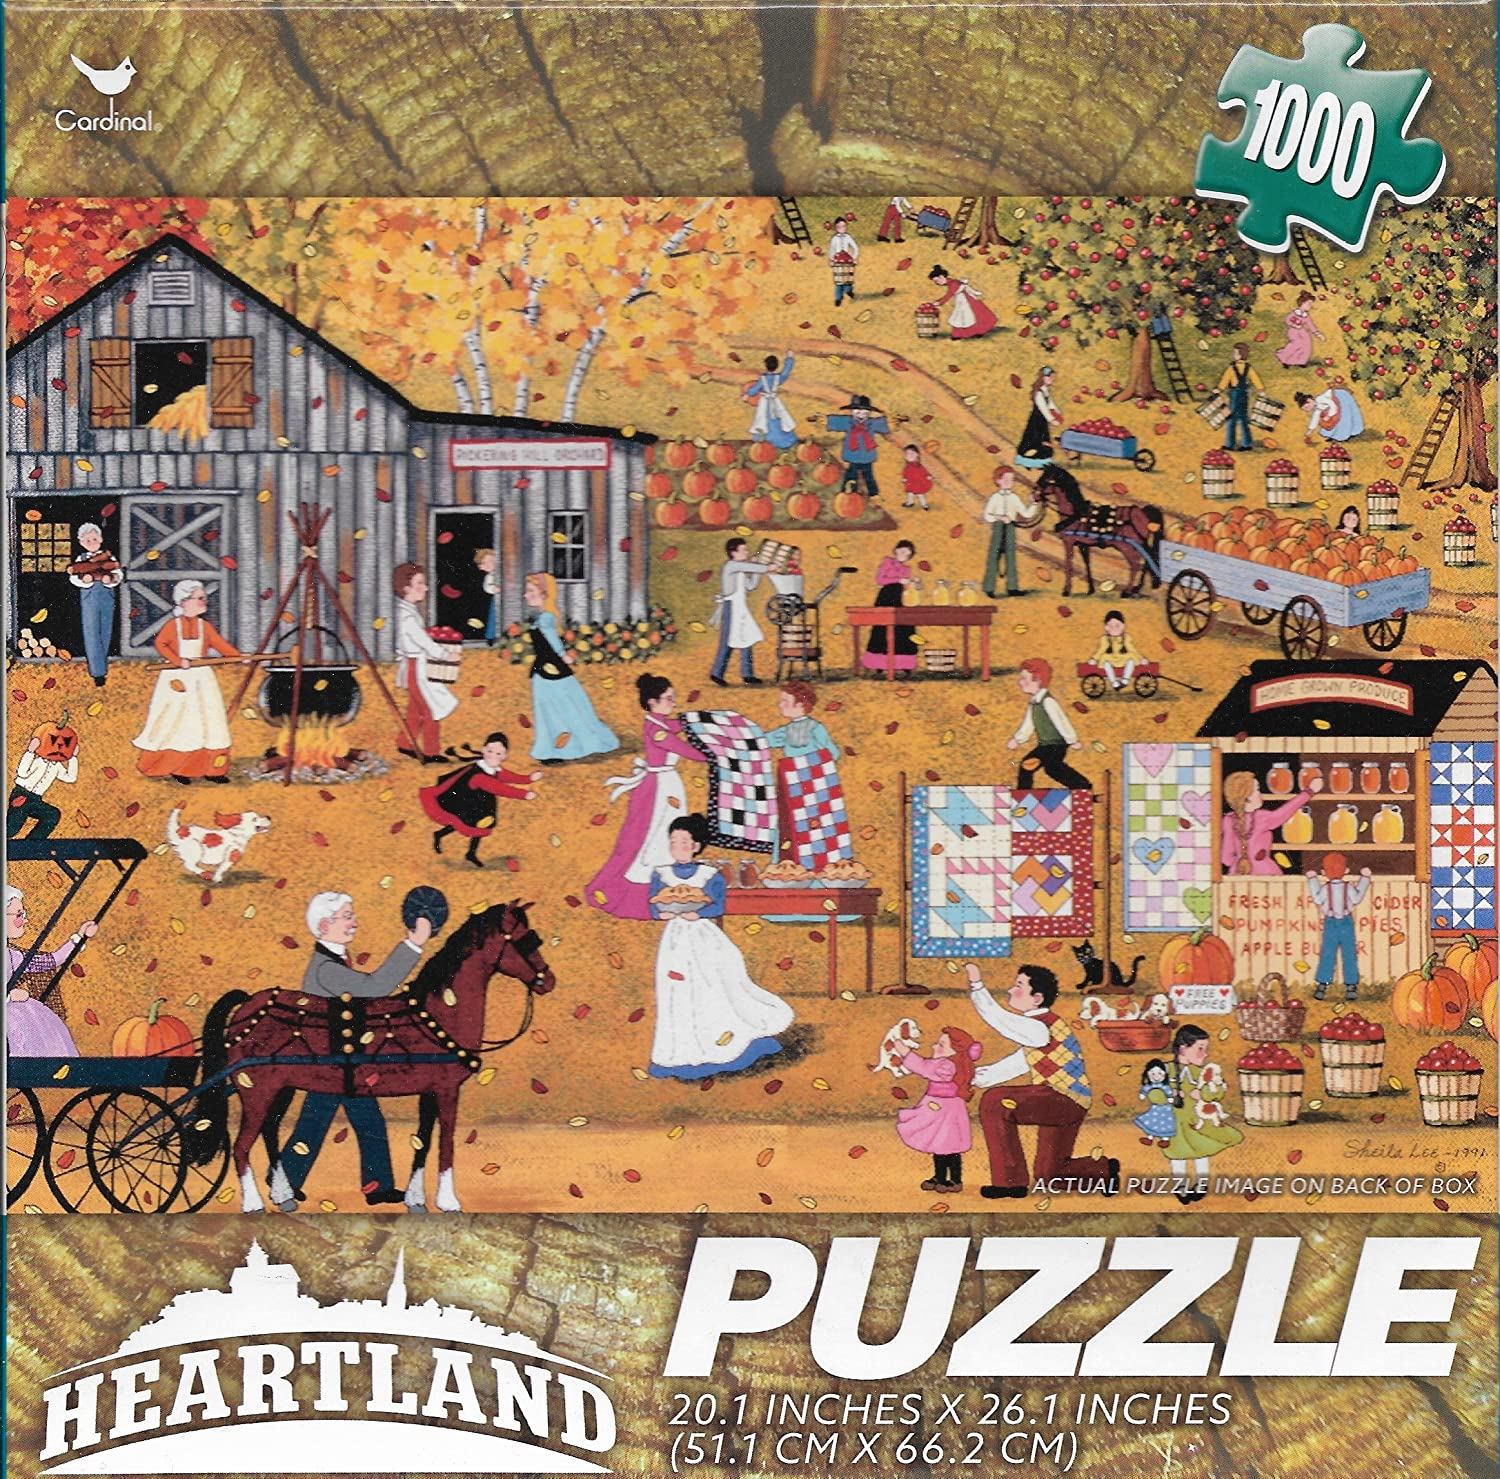 October Gave Party By Sheila Lee Elstad 1000 Piece Puzzle by George